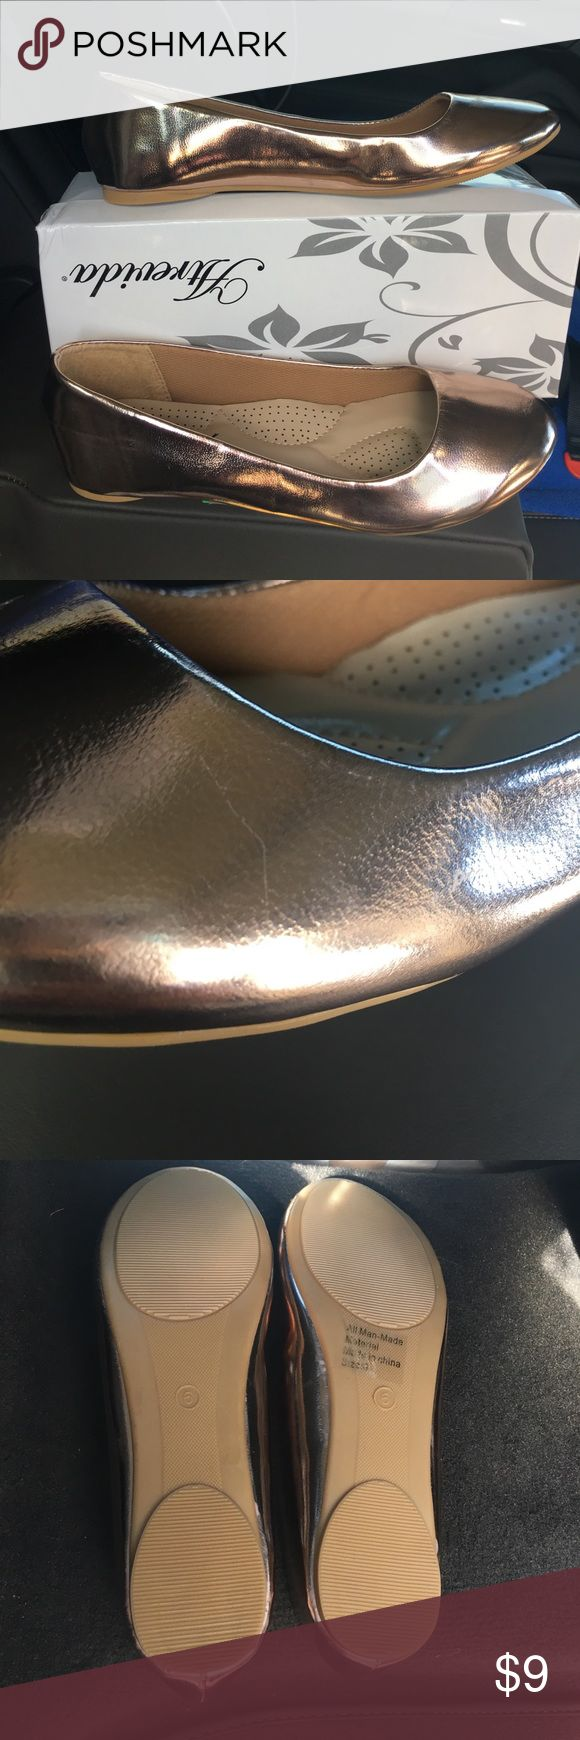 Rose gold champagne colored flats size 6 Brand new Brand new still in box size 6 metallic flats. I would call them rose gold or champagne color. I bought them for my daughter without having her try them on first and they didn't fit but I waited too late to return them. They have never been worn. There is one teeny tiny scratch that you can barely see on one of the shoes. Atrevida Shoes Flats & Loafers